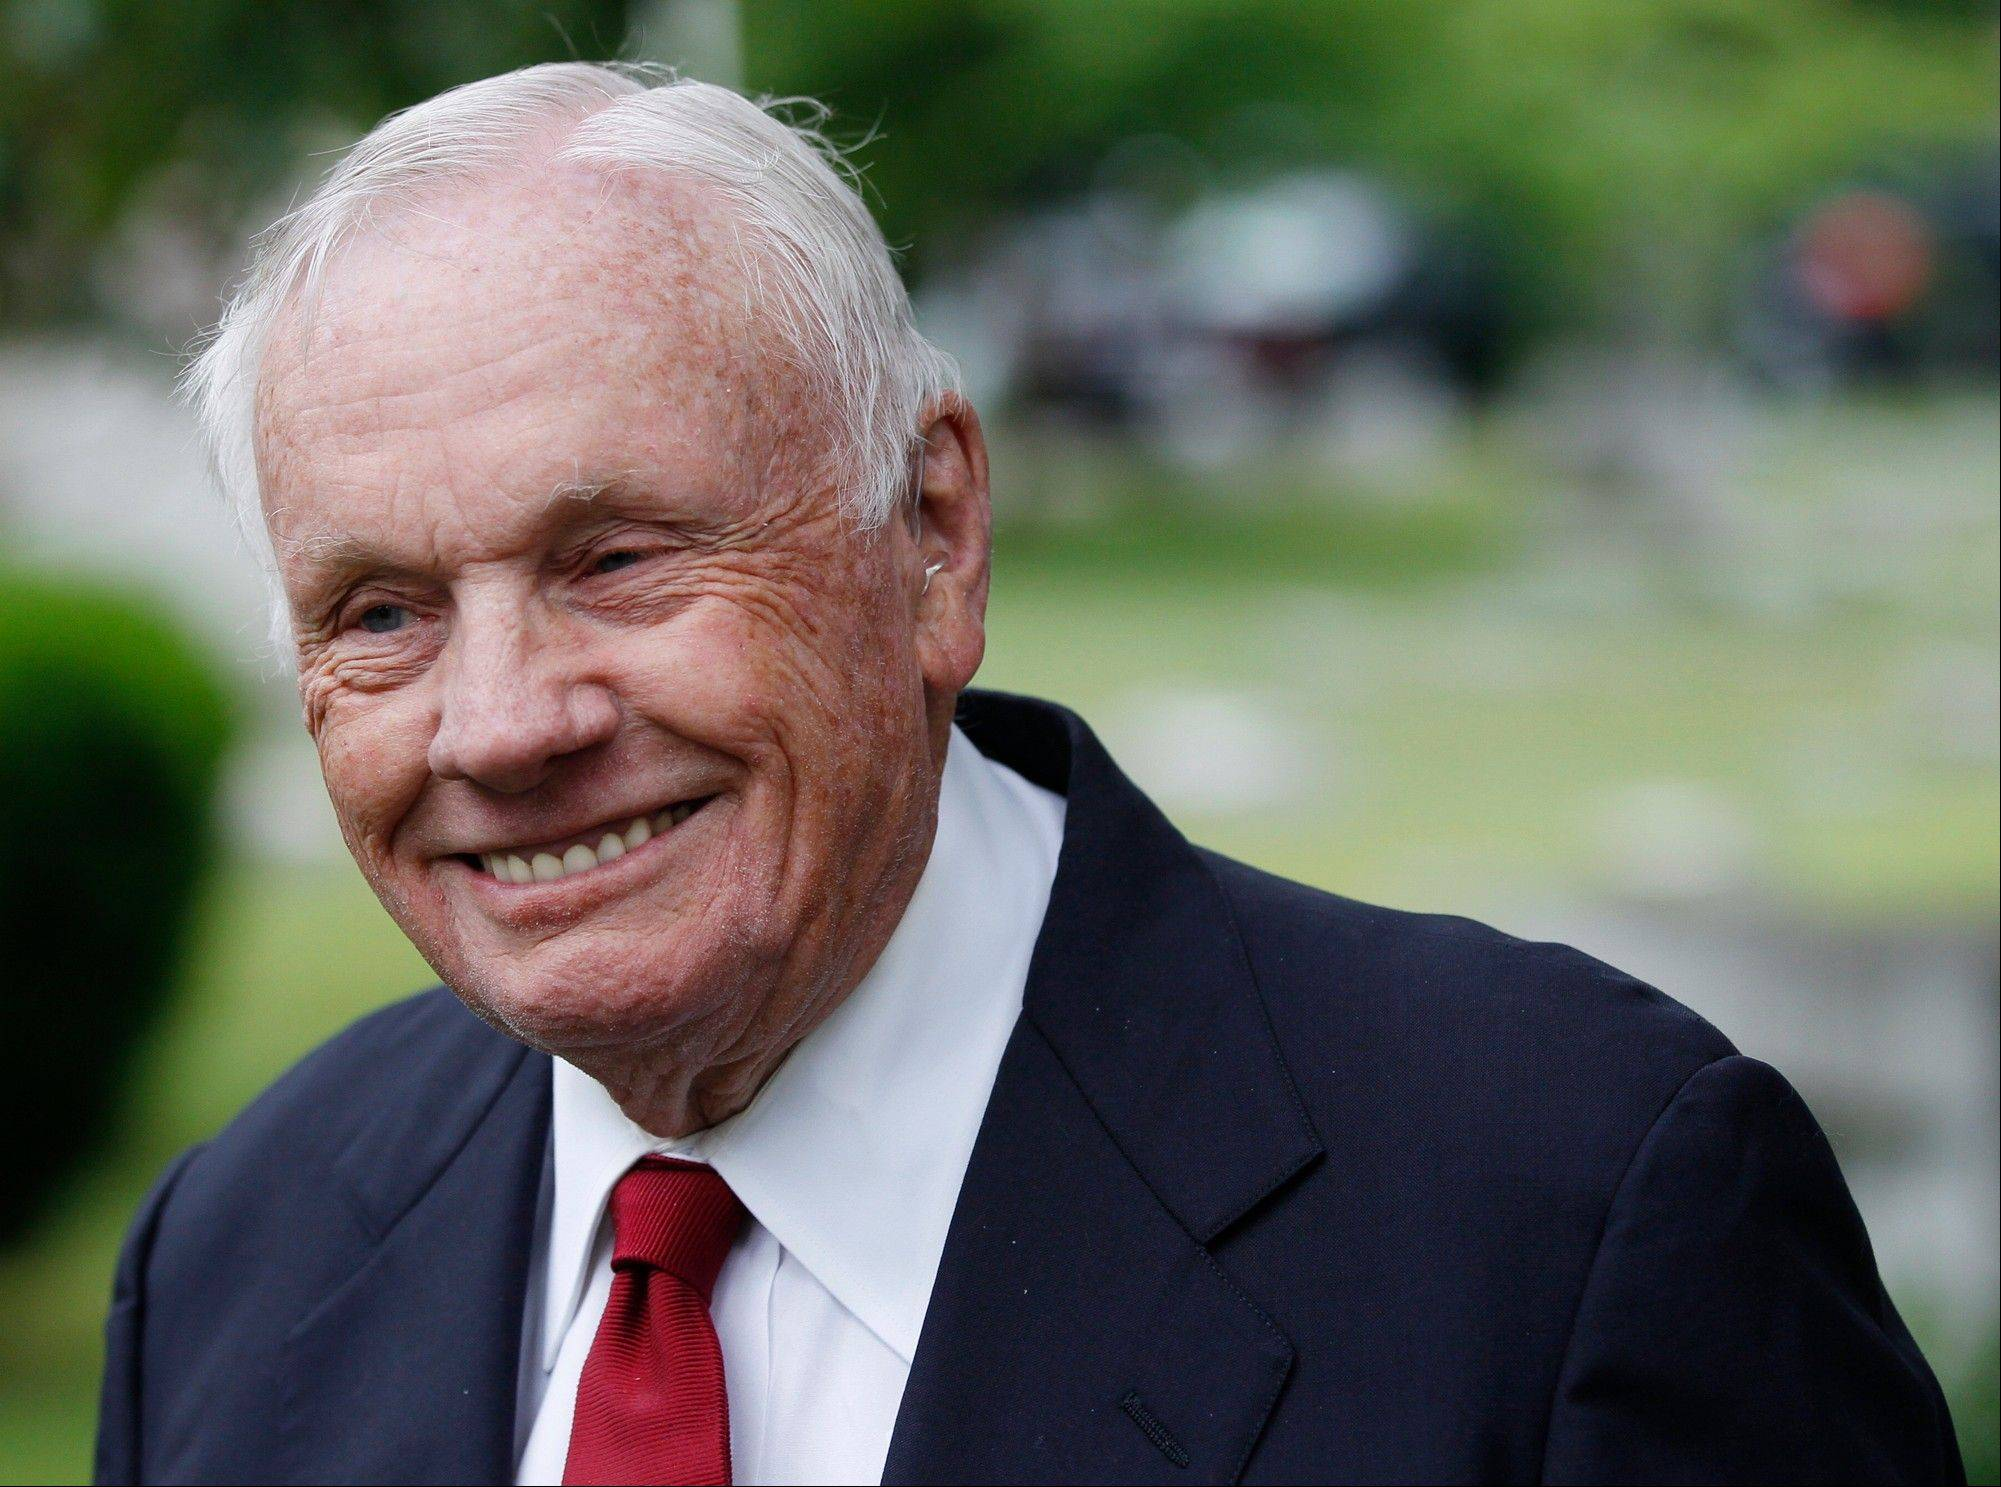 Neil Armstrong, the first man to walk on the moon, died on Aug. 25. He was 82.